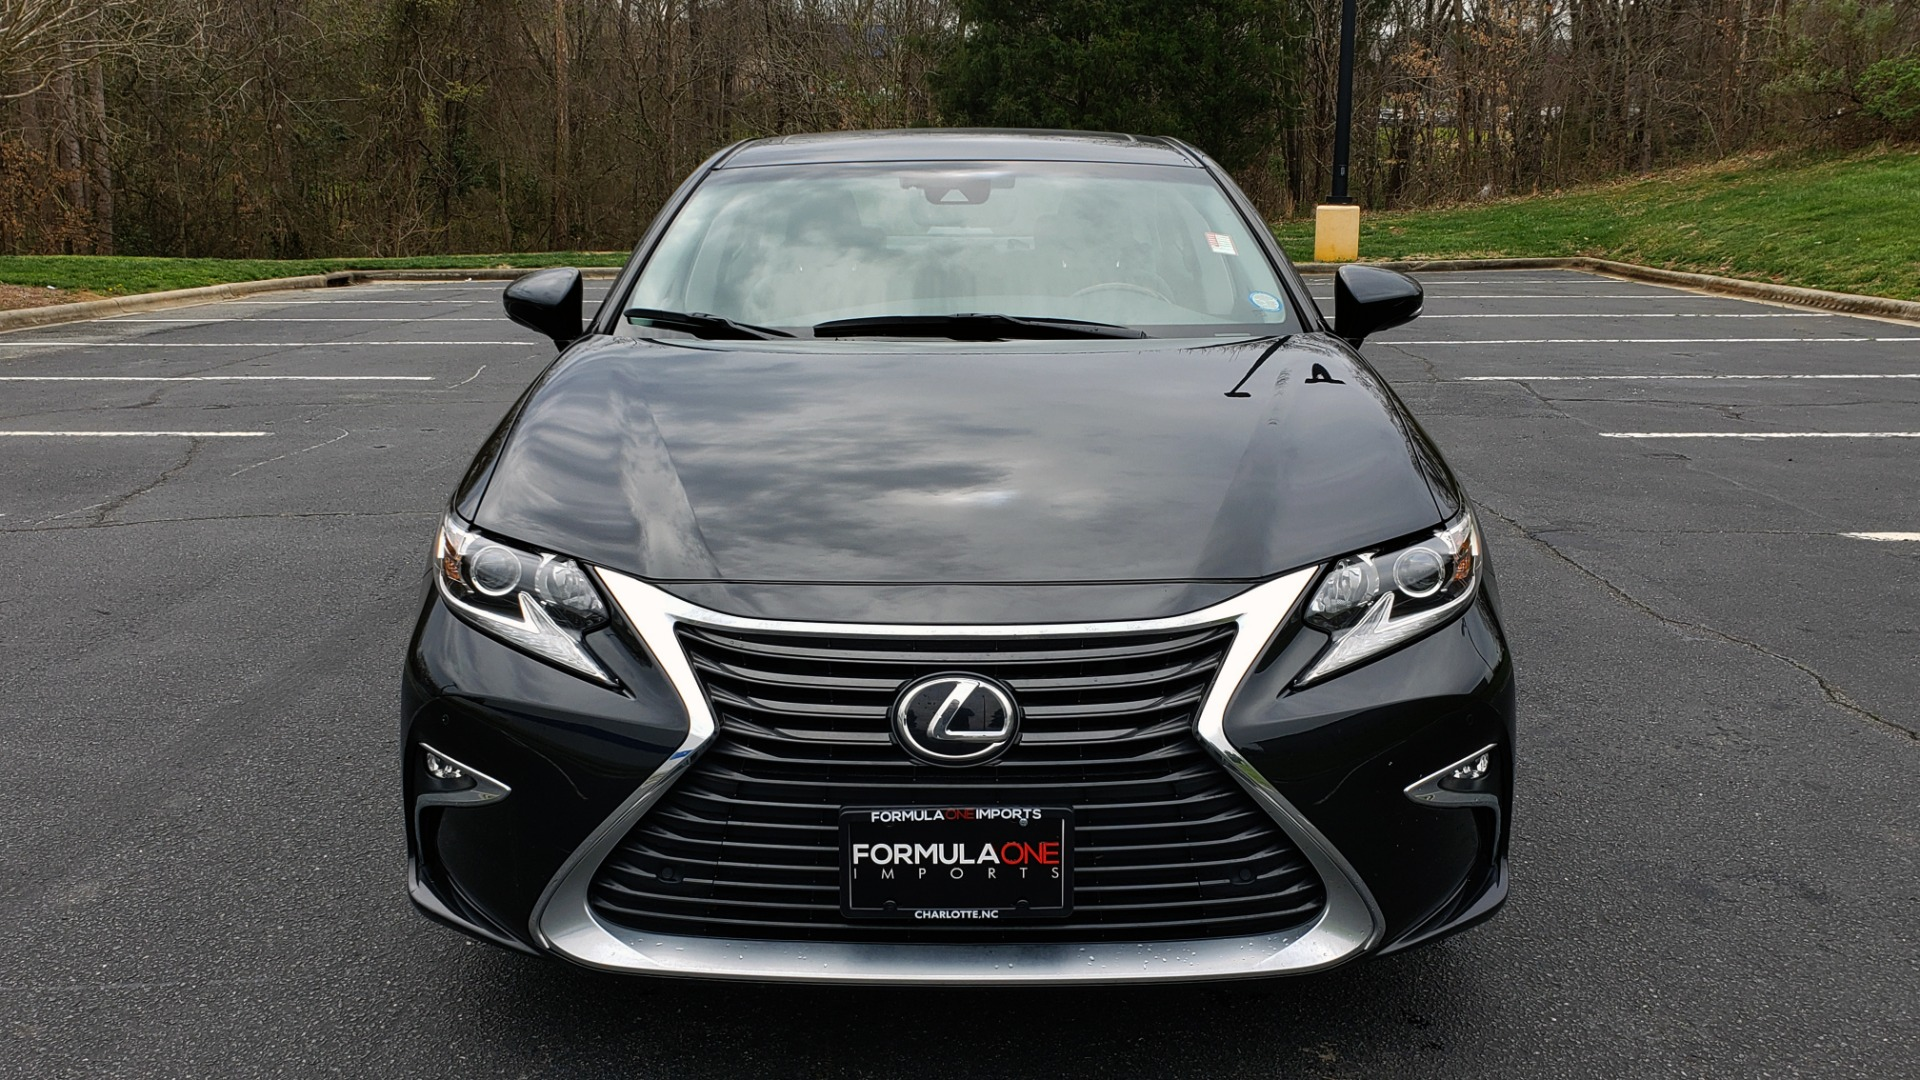 Used 2017 Lexus ES 350 PREMIUM / SUNROOF / PARK ASST / BSM / VENT SEATS / REARVIEW for sale Sold at Formula Imports in Charlotte NC 28227 22